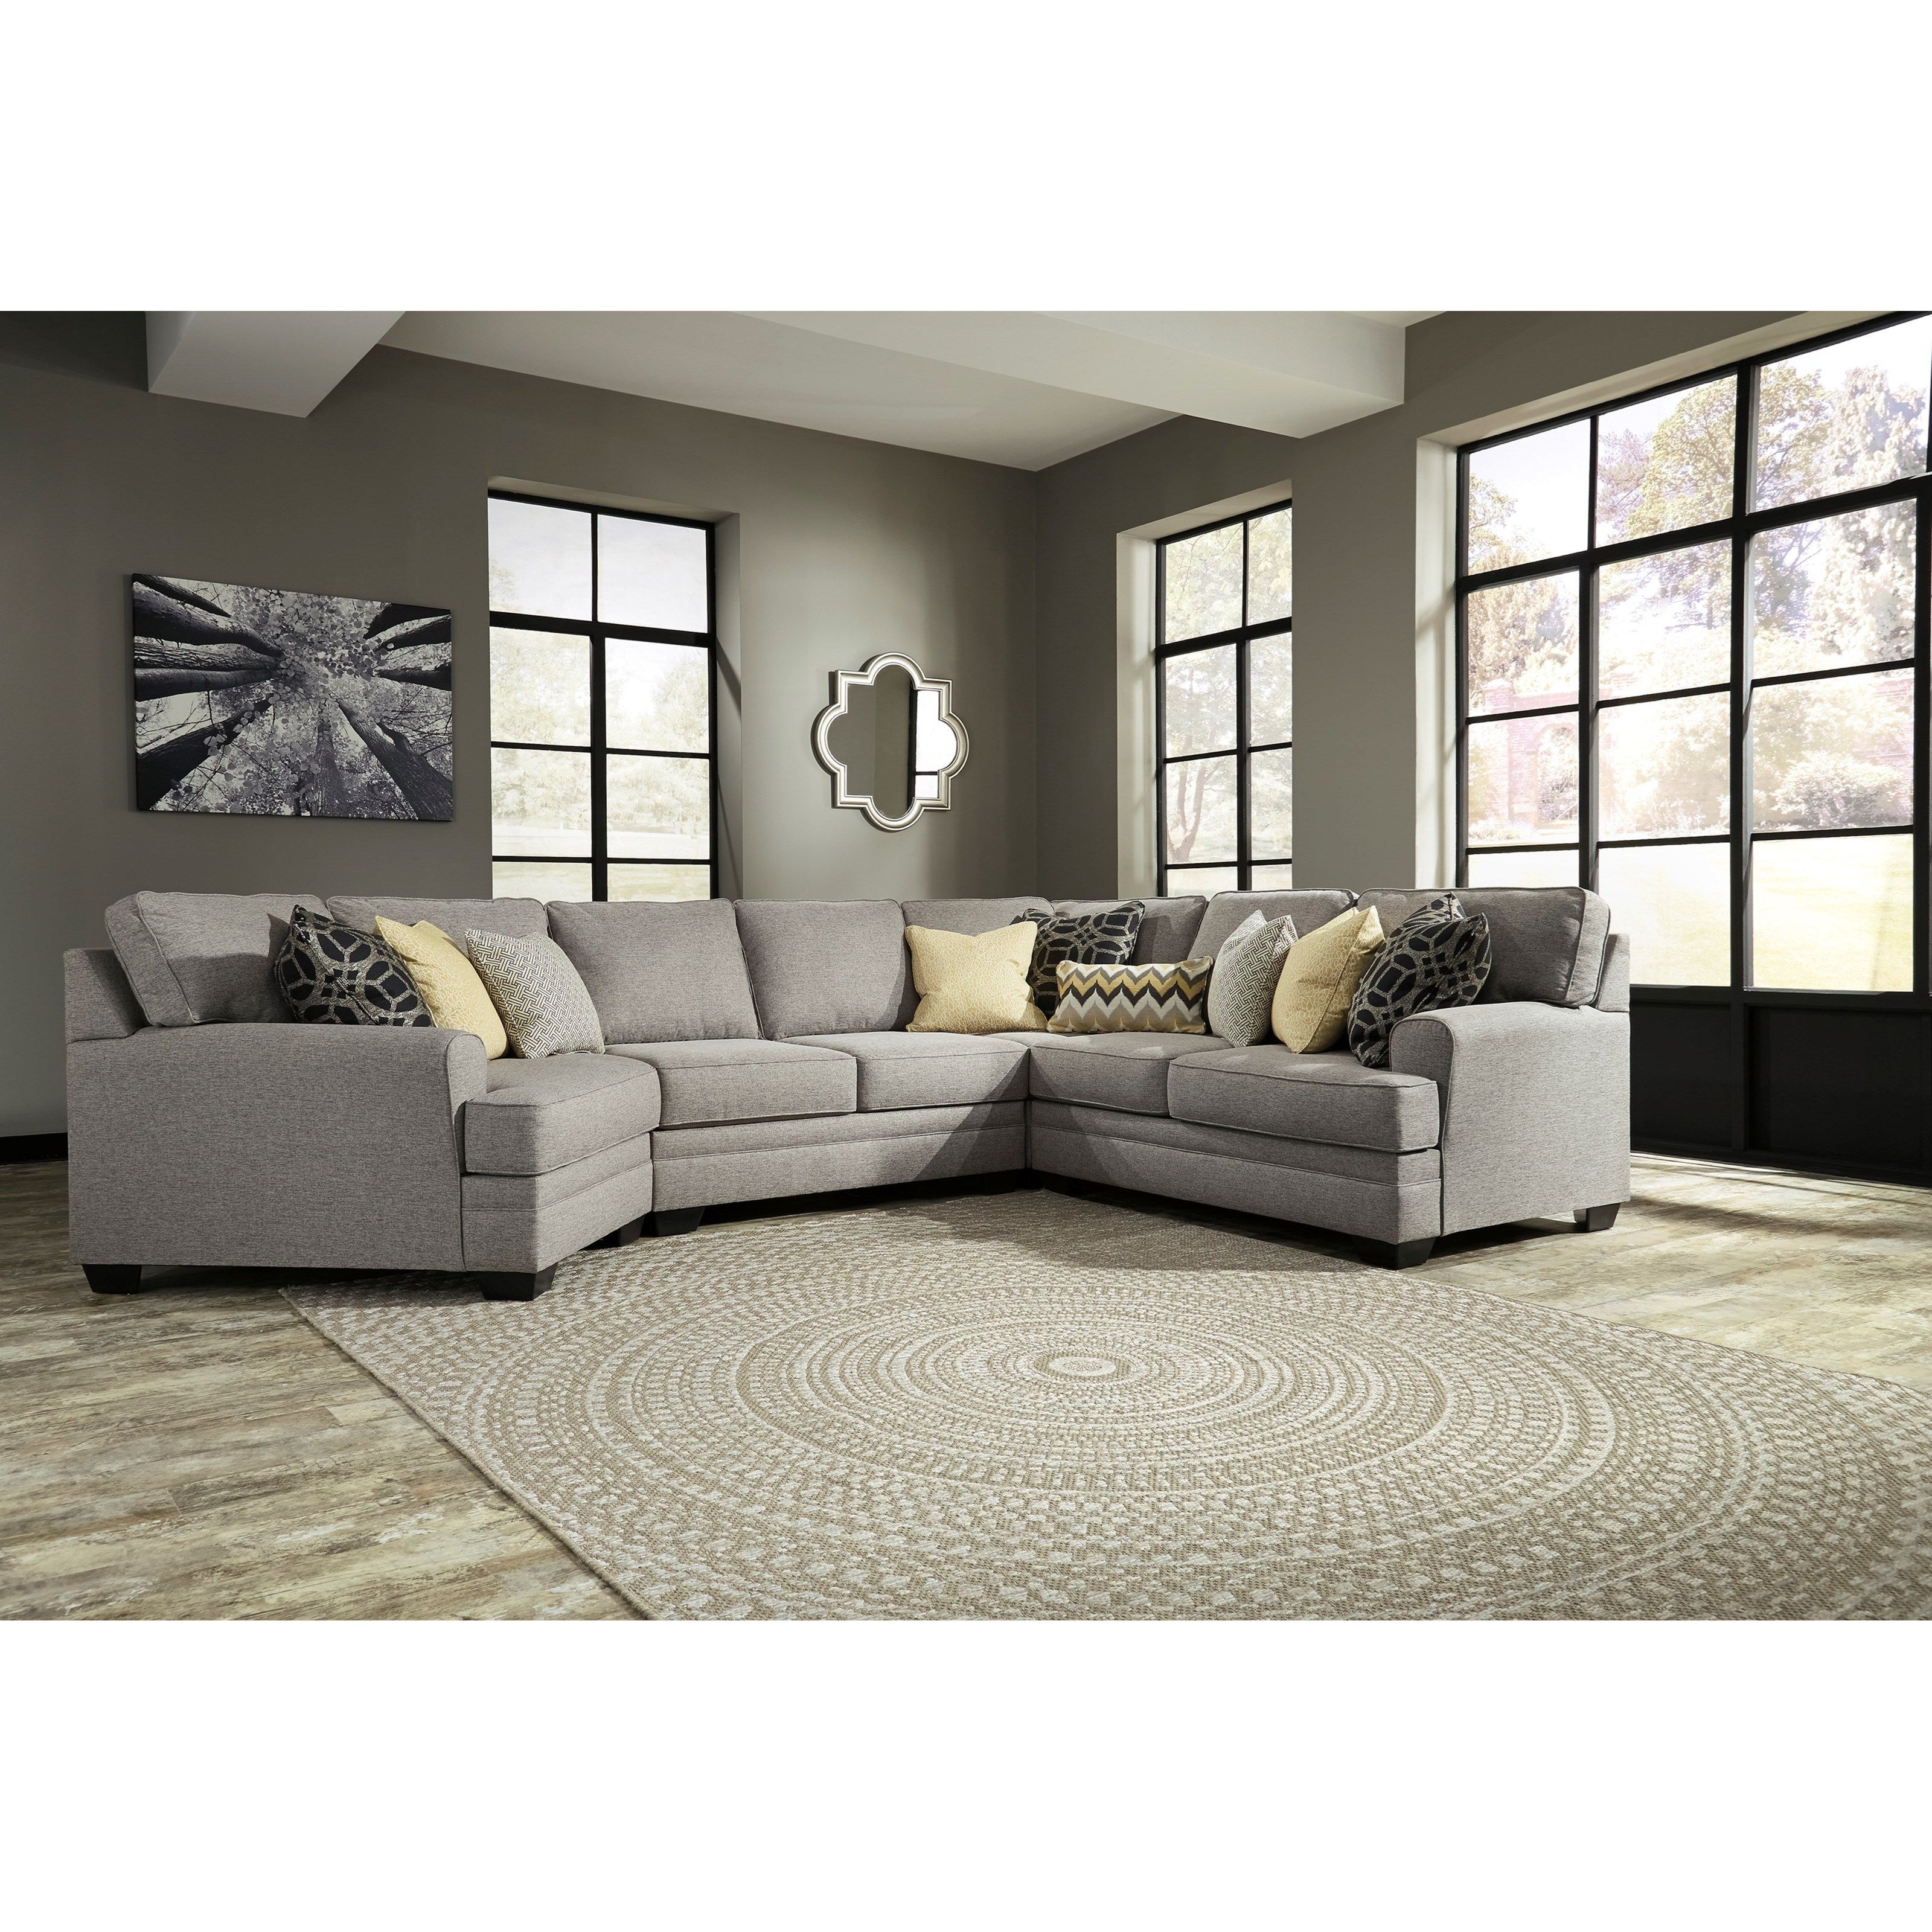 Cresson 4 Piece Sectional with Cuddler by Benchcraft